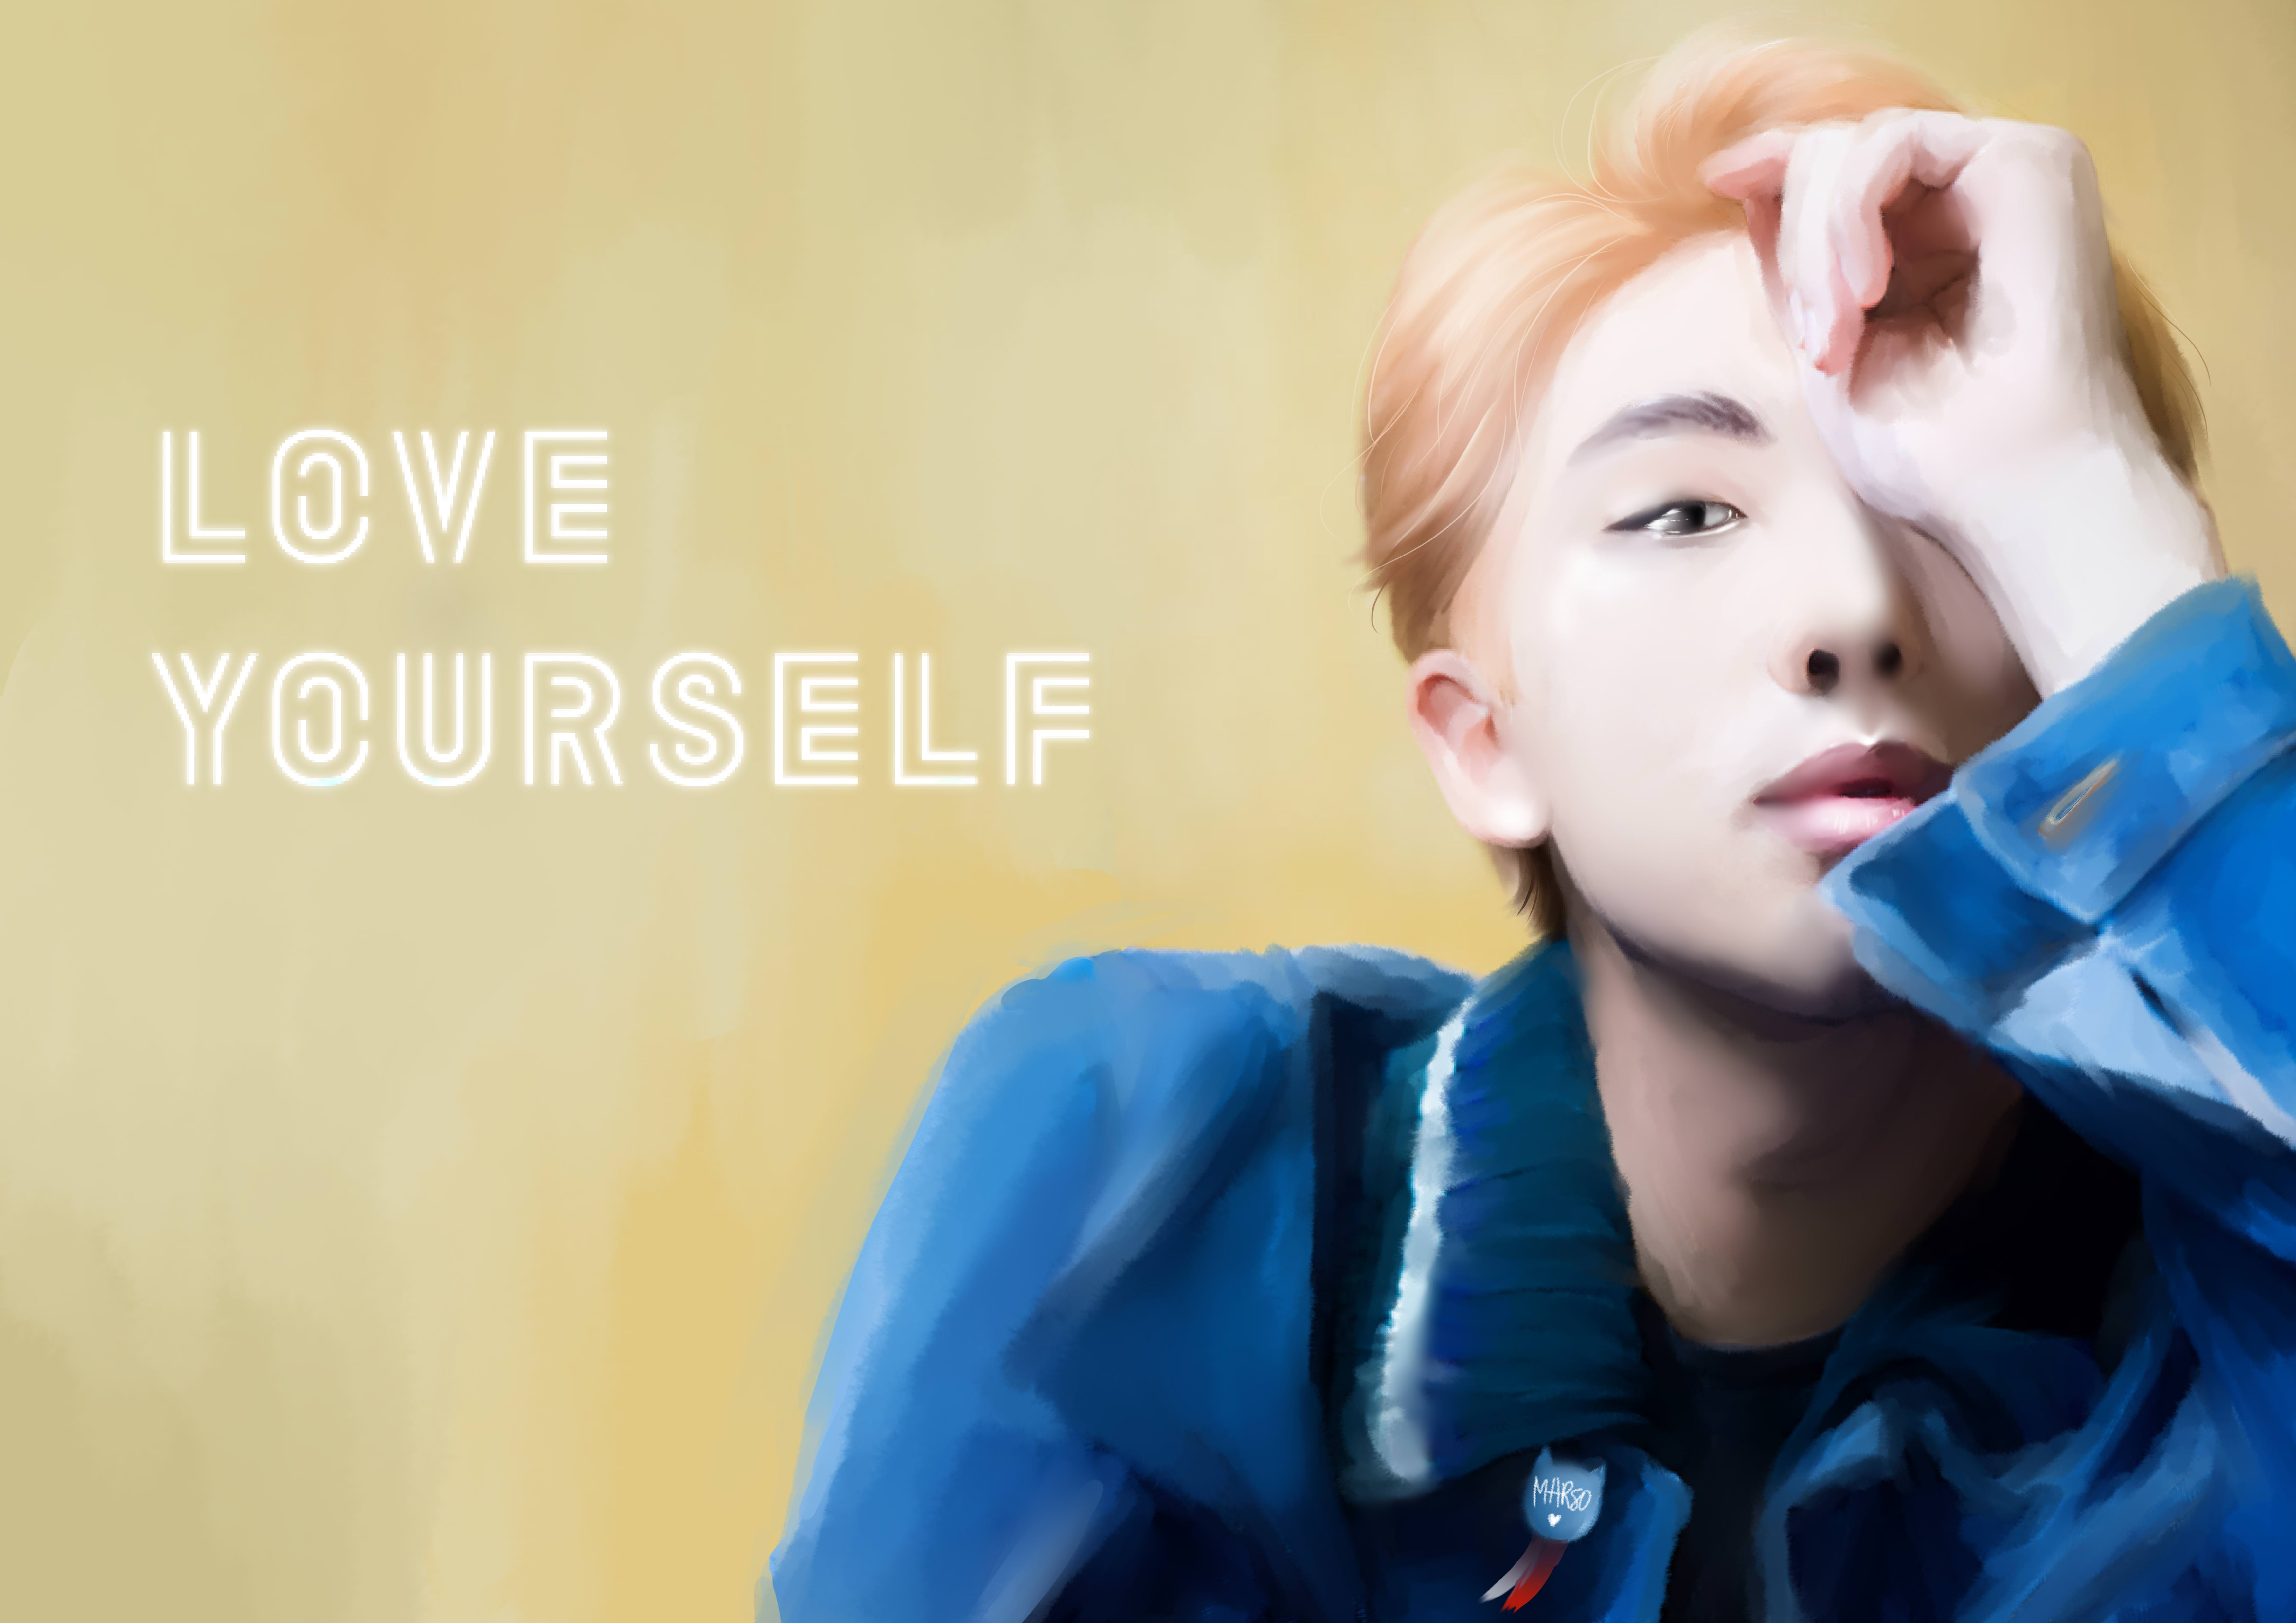 RAP MONSTER WALLPAPER   Album on Imgur 7016x4961